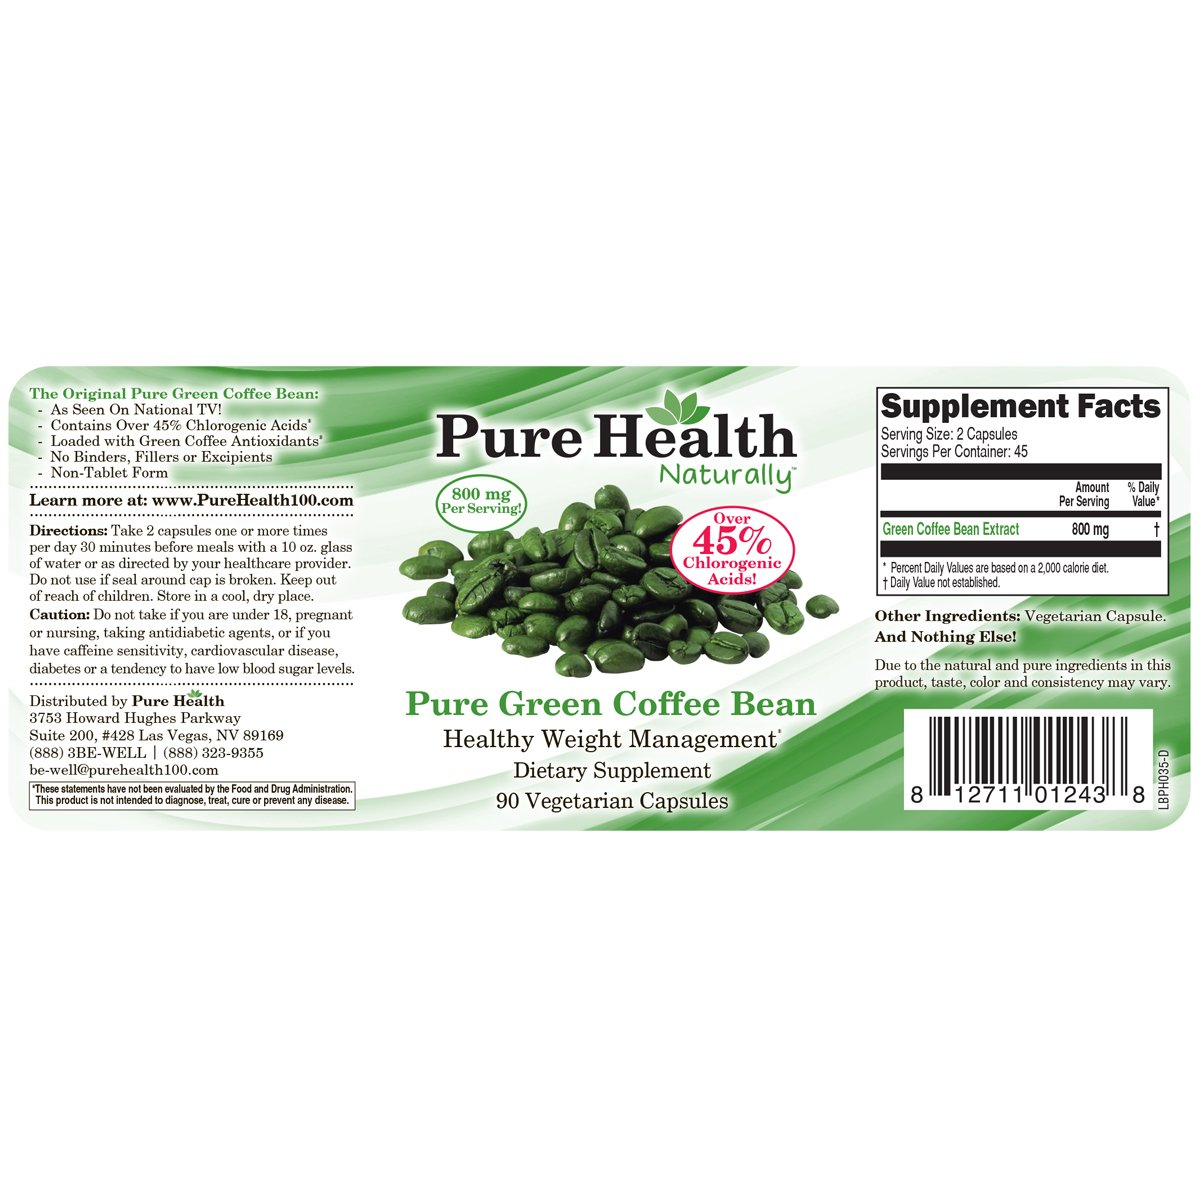 Pure Health Green Coffee Bean Extract - 800 mg Capsules - 90 Capsules by Pure Health (Image #1)